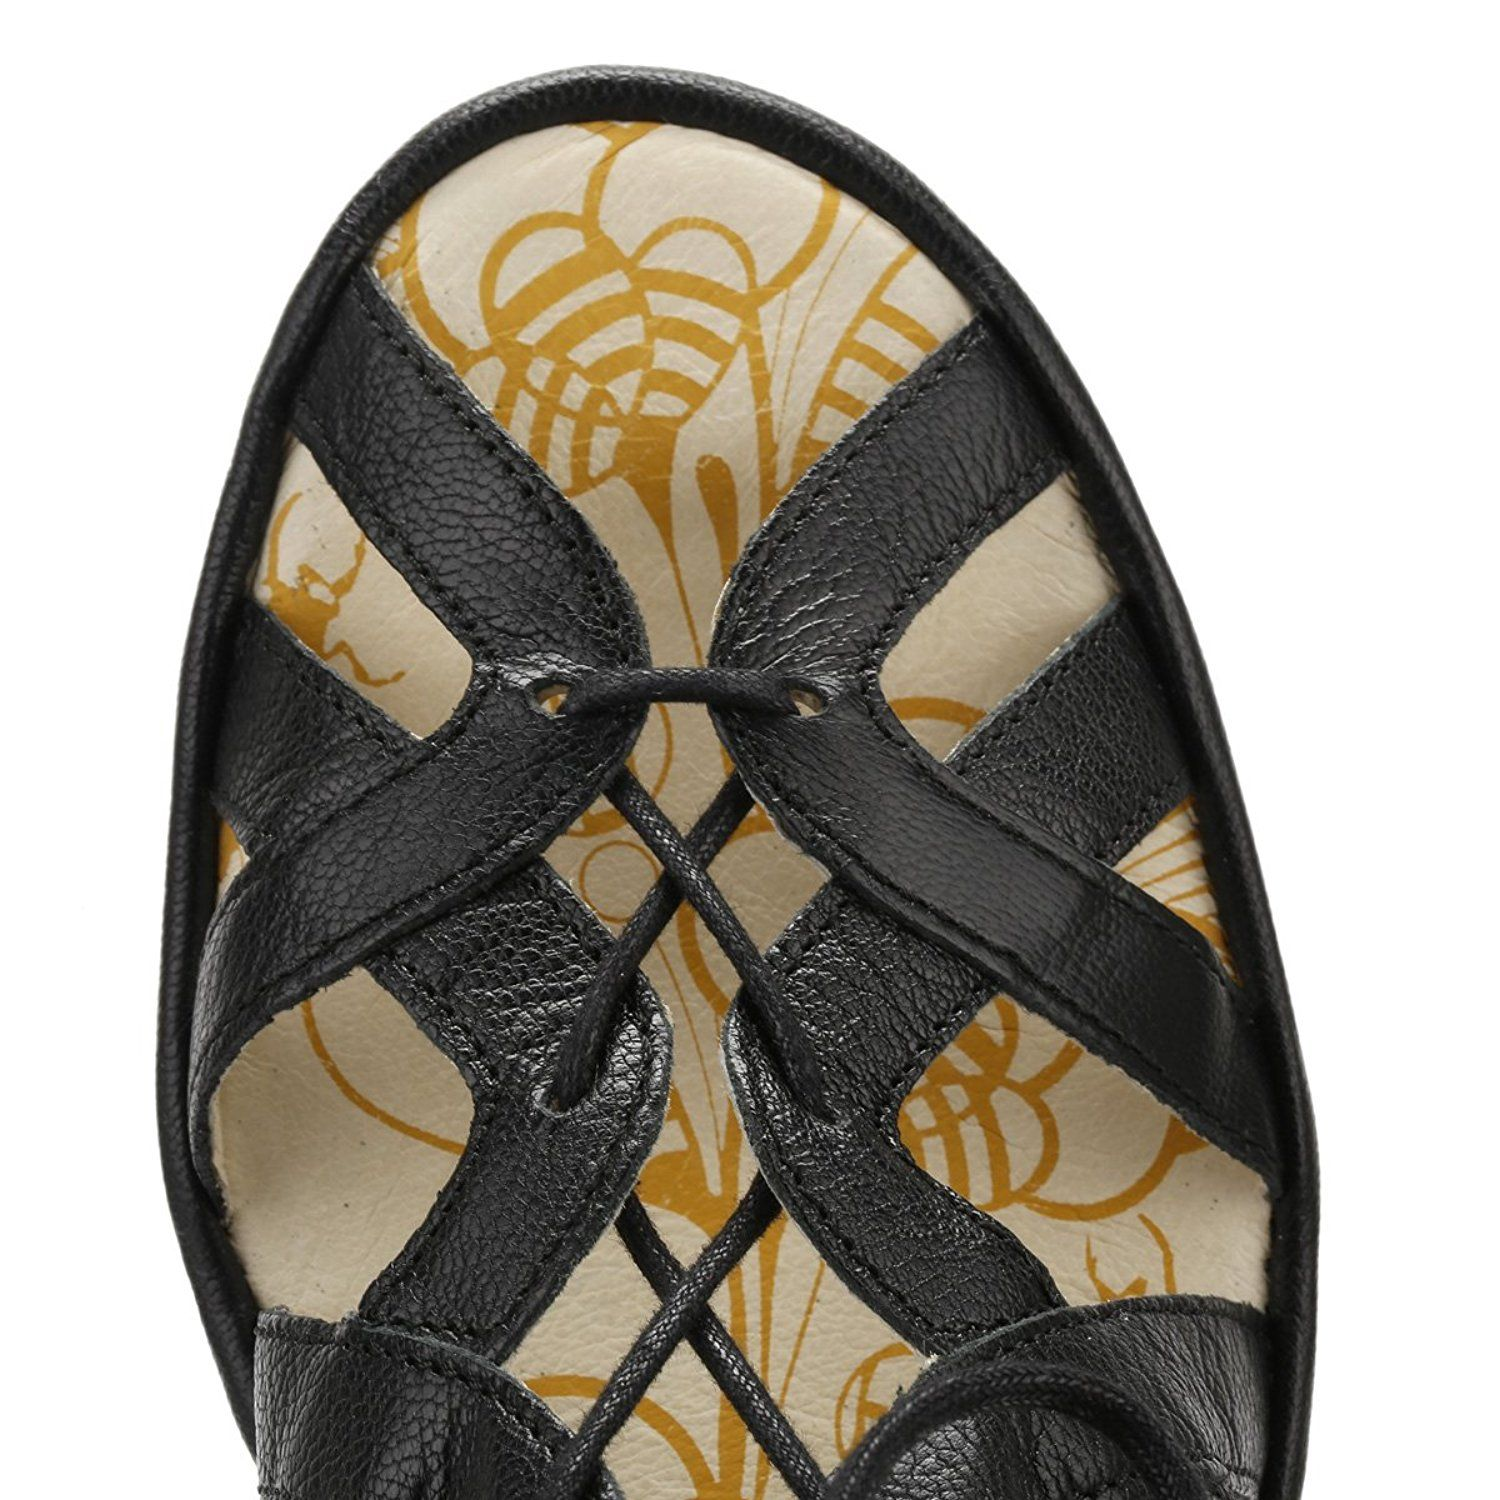 eaf32454aa8 Fly London Womens YELI719FLY Wedge Leather Sandals -- Details can be found  by clicking on